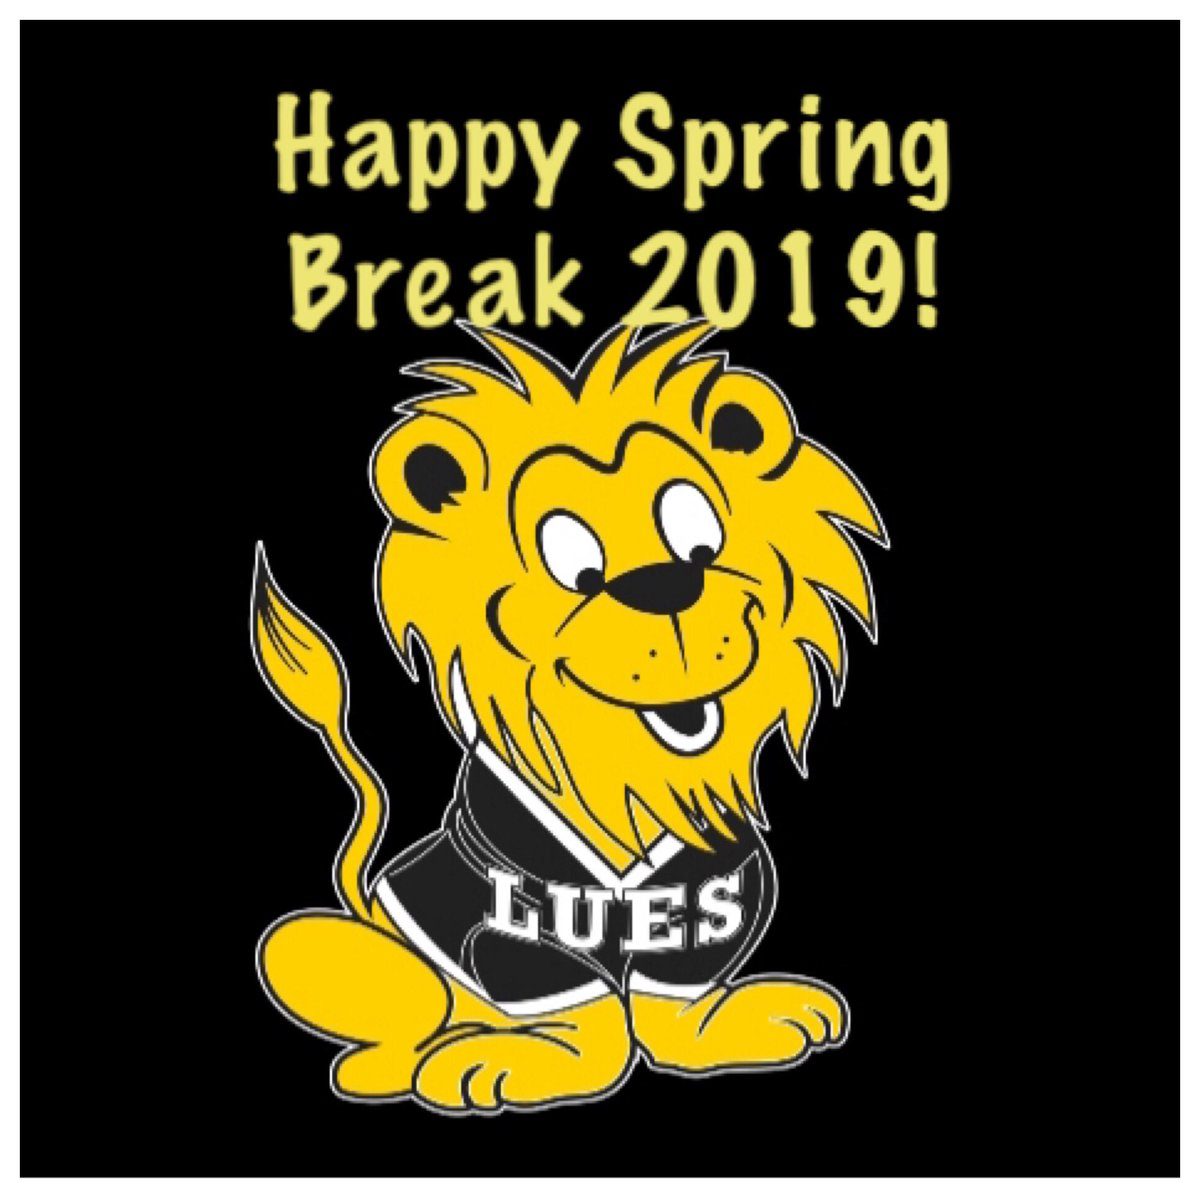 test Twitter Media - And just like that,.....it's Spring Break!   Wishing all our FCPS leaders, educators, staff, scholars and families a wonderful break.  @FredSchools #lueslions https://t.co/i3c8xzKYEV